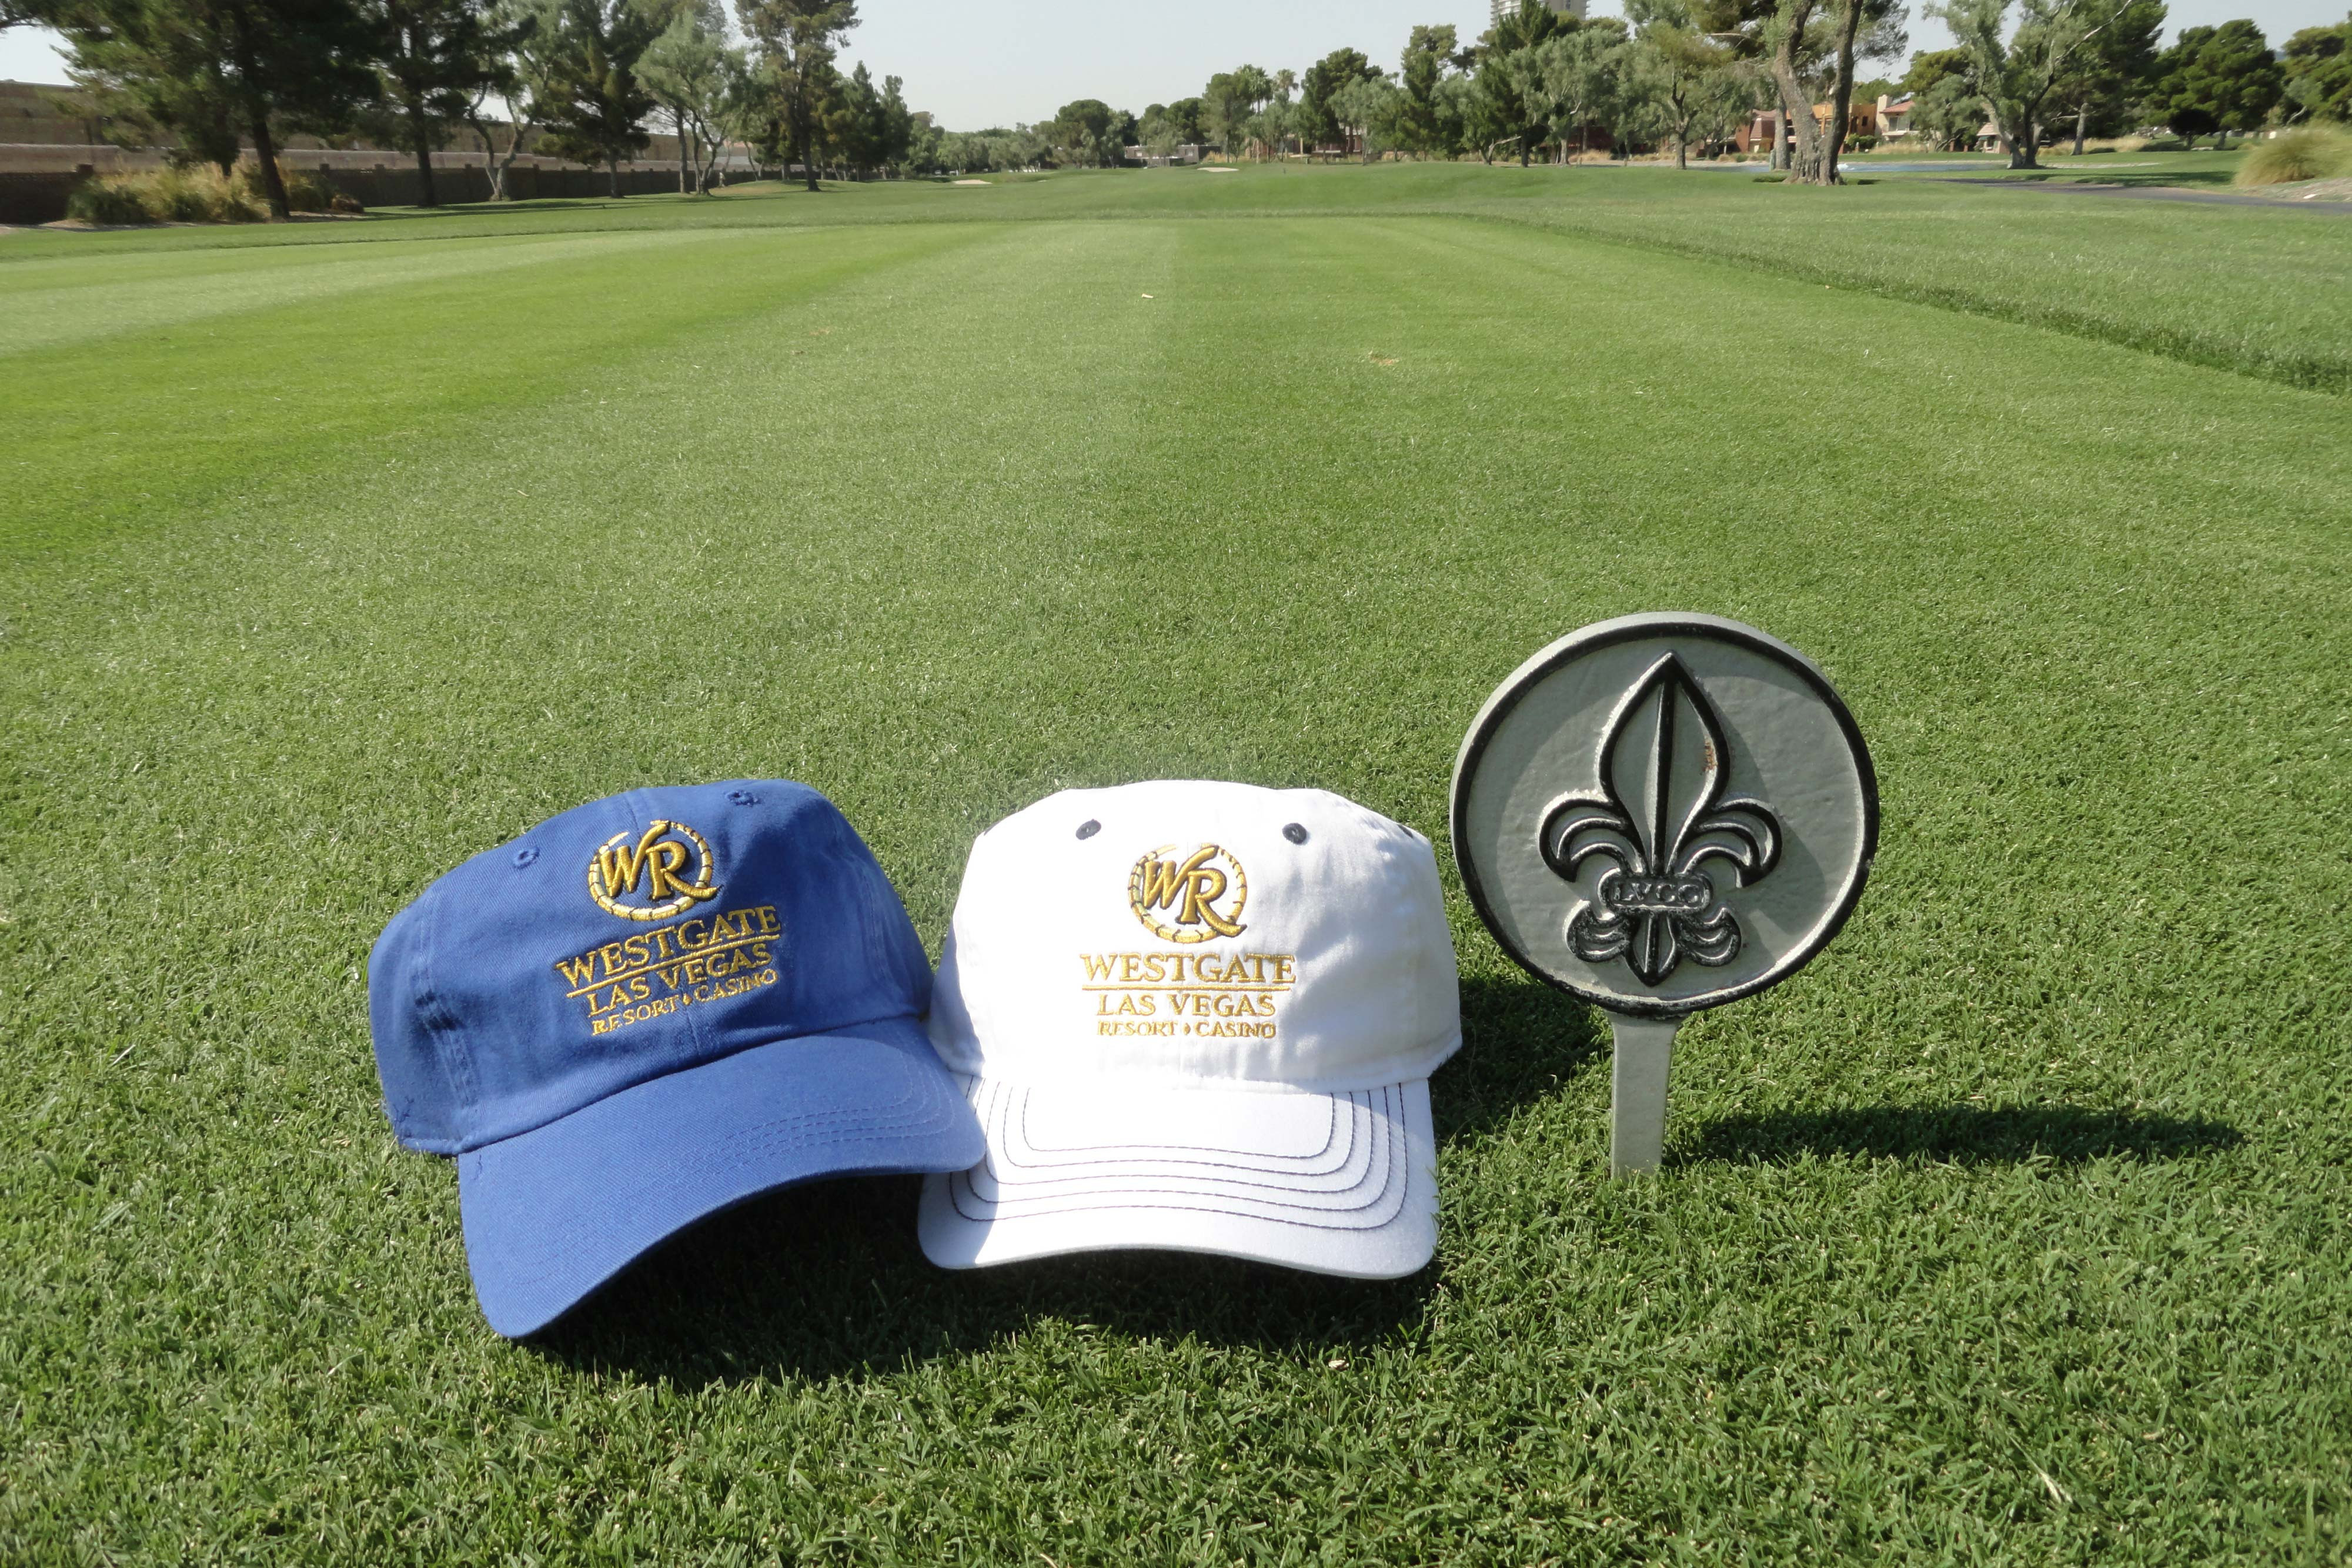 Westgate Las Vegas Resort & Casino is the Ideal Place for Golfing Vacations | Westgate Resorts